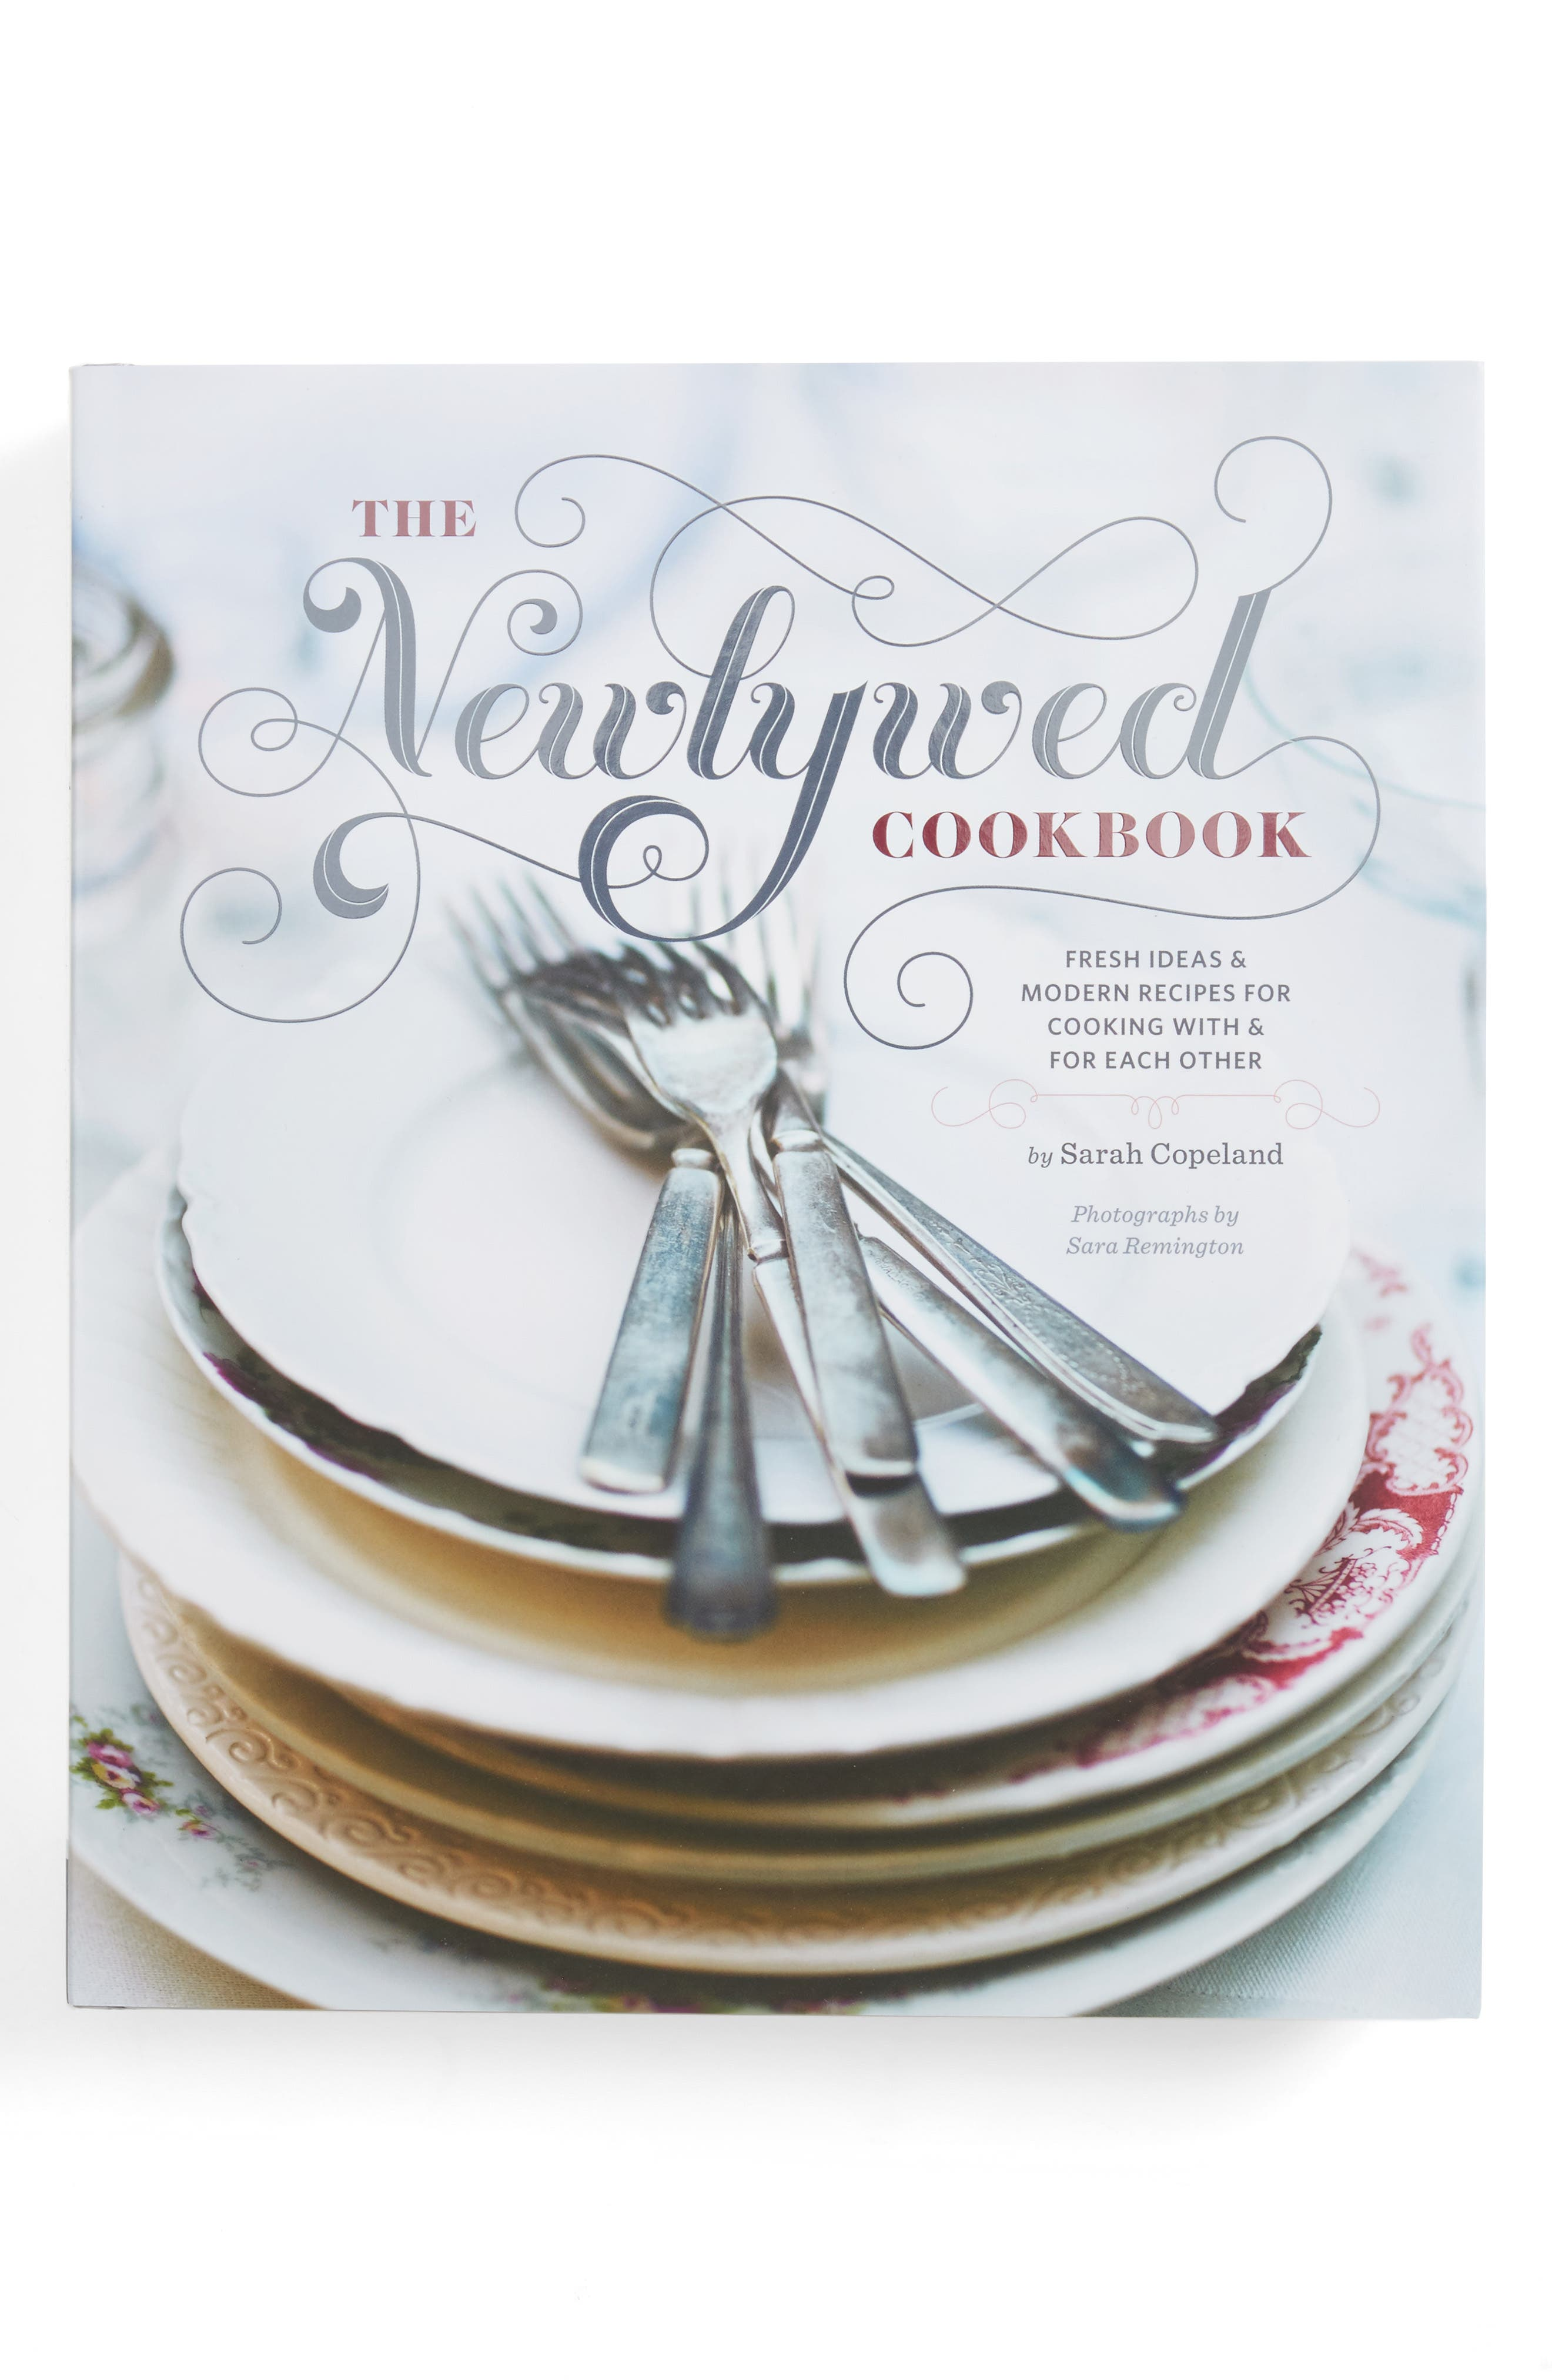 Alternate Image 1 Selected - 'The Newlywed Cookbook'